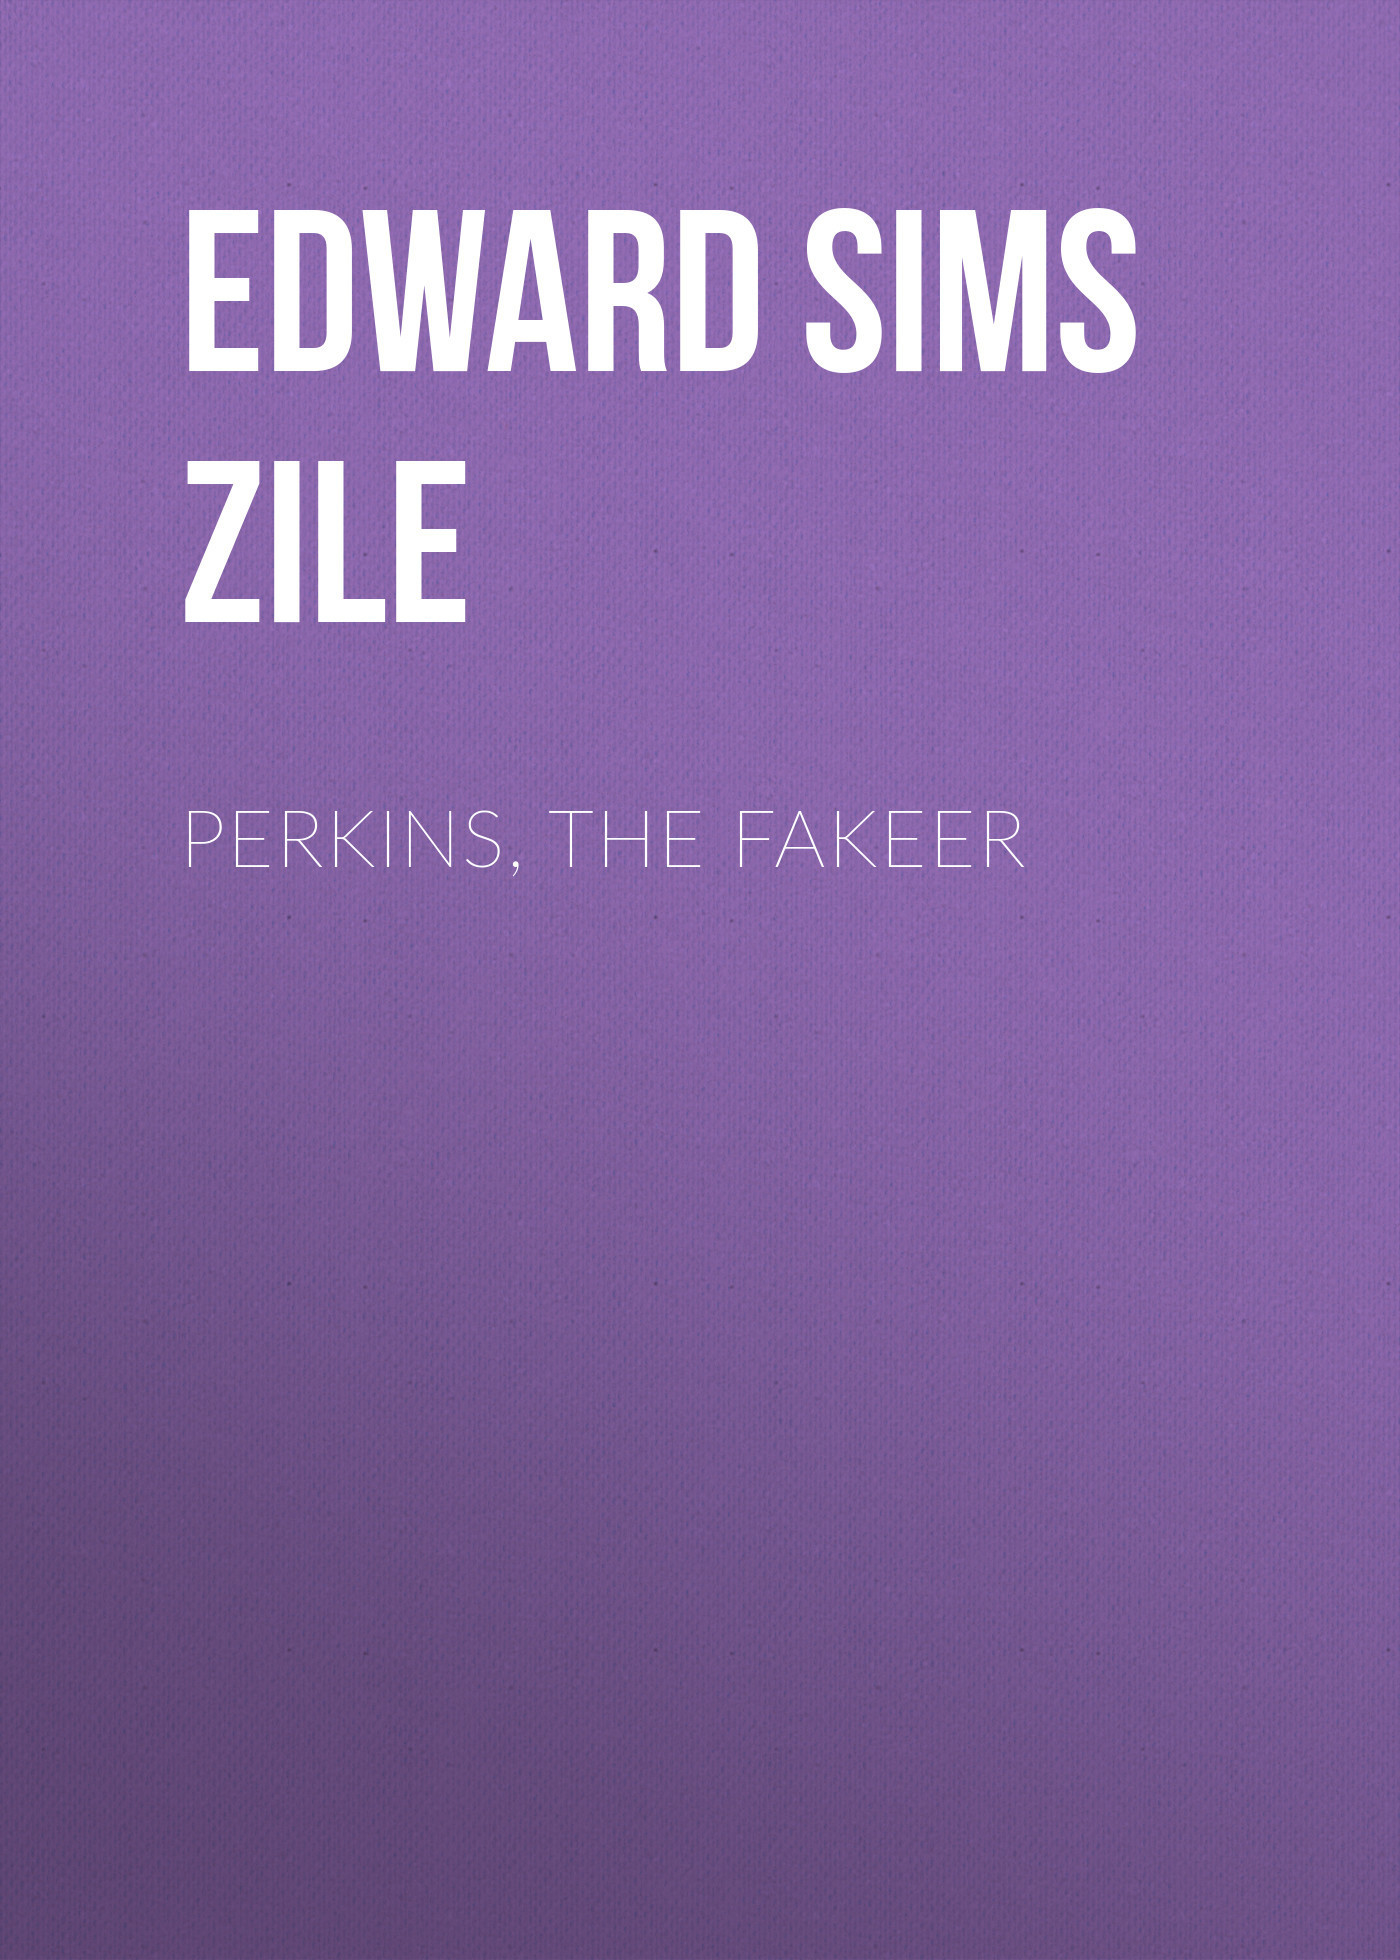 Edward Sims van Zile Perkins, the Fakeer электронный ключ microsoft the sims 4 жизнь в городе